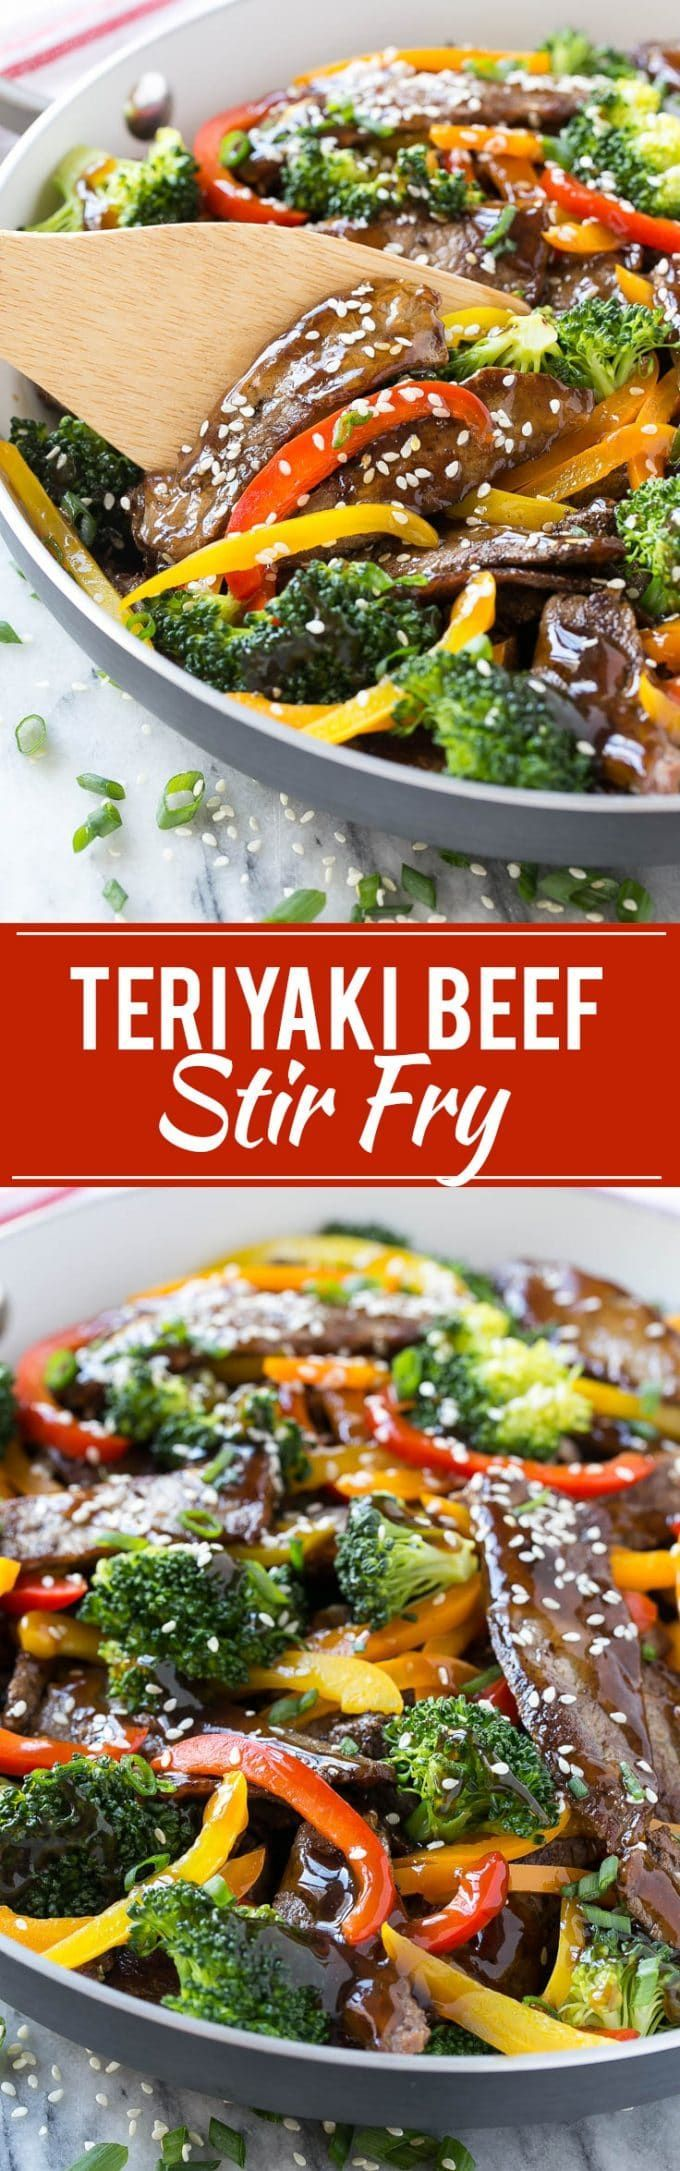 Teriyaki Beef Stir Fry Recipe | Teriyaki Beef Stir Fry | Easy Teriyaki Beef Stir Fry | Best Teriyaki Beef Stir Fry